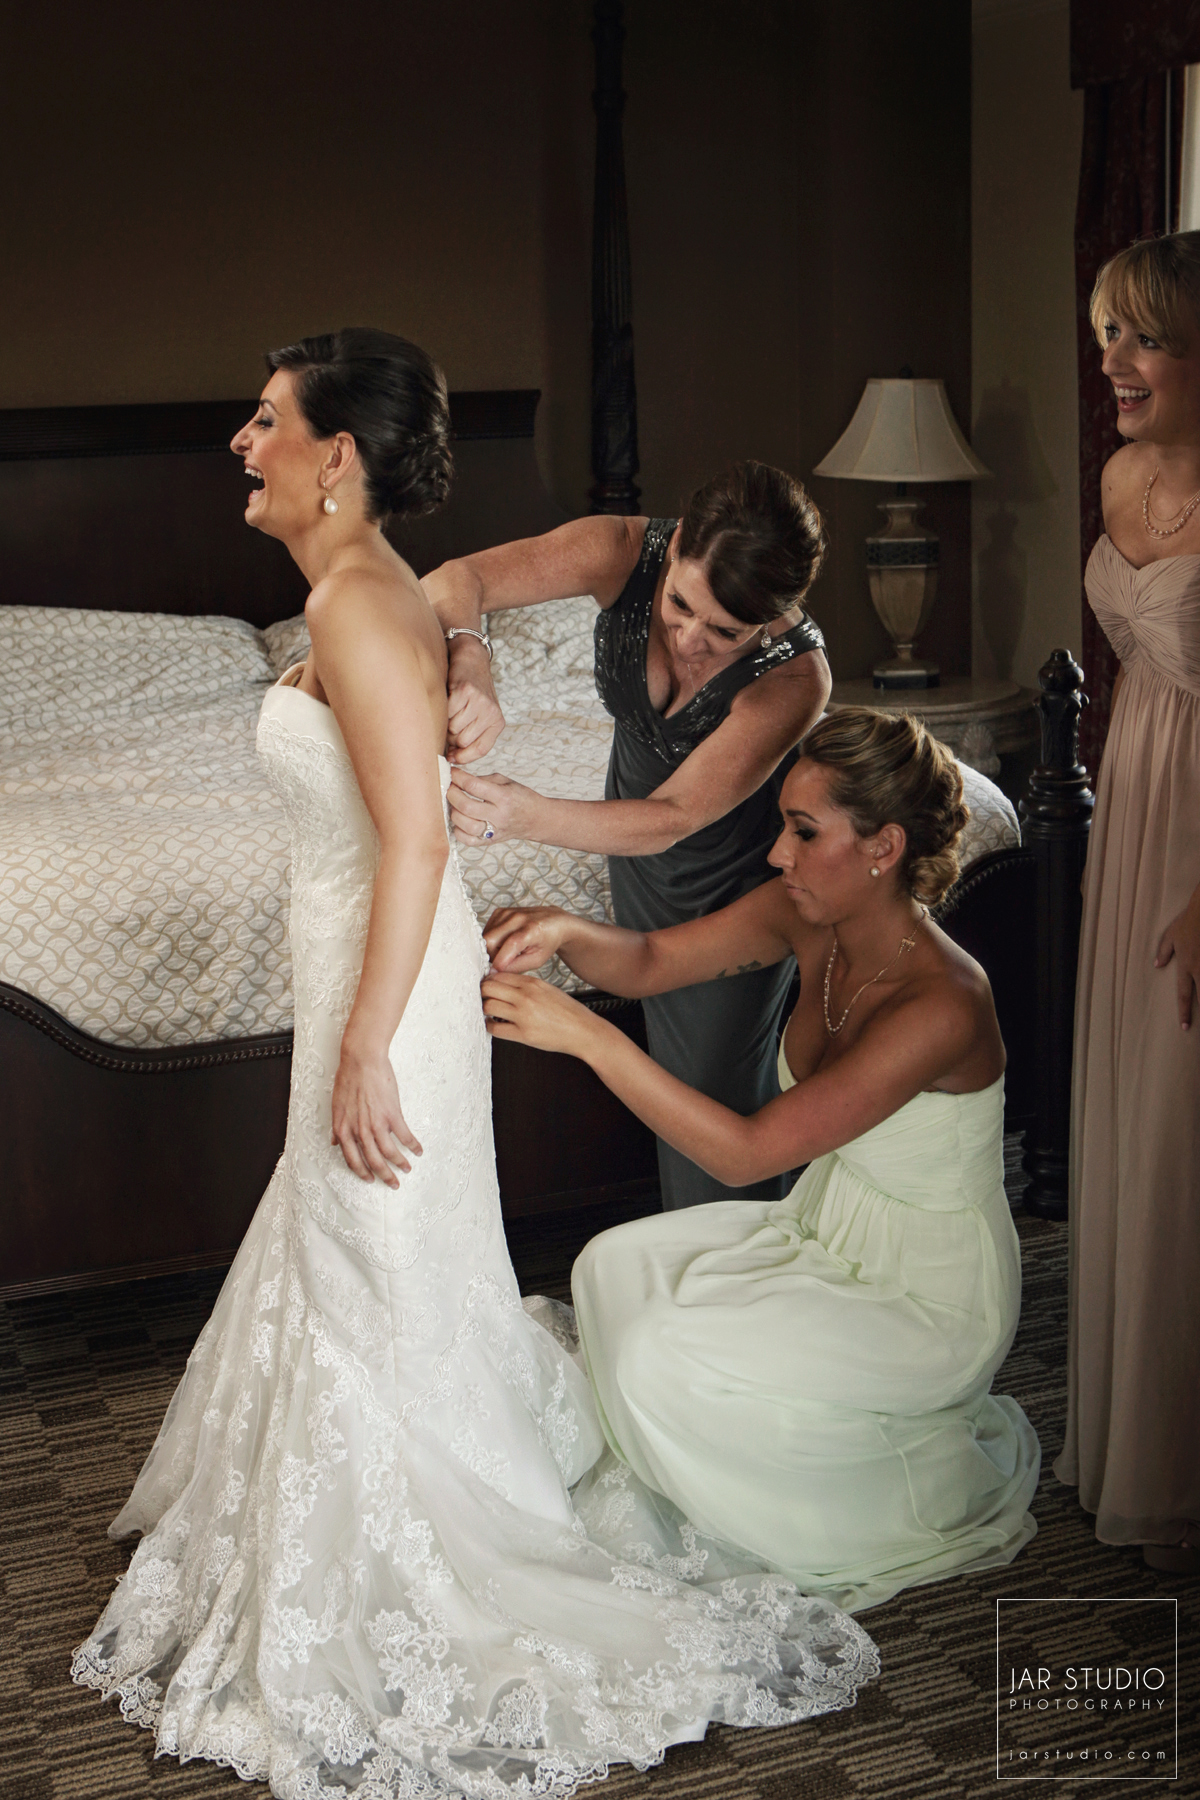 05-getting-ready-jarstudio-wedding-photography-orlando.jpg